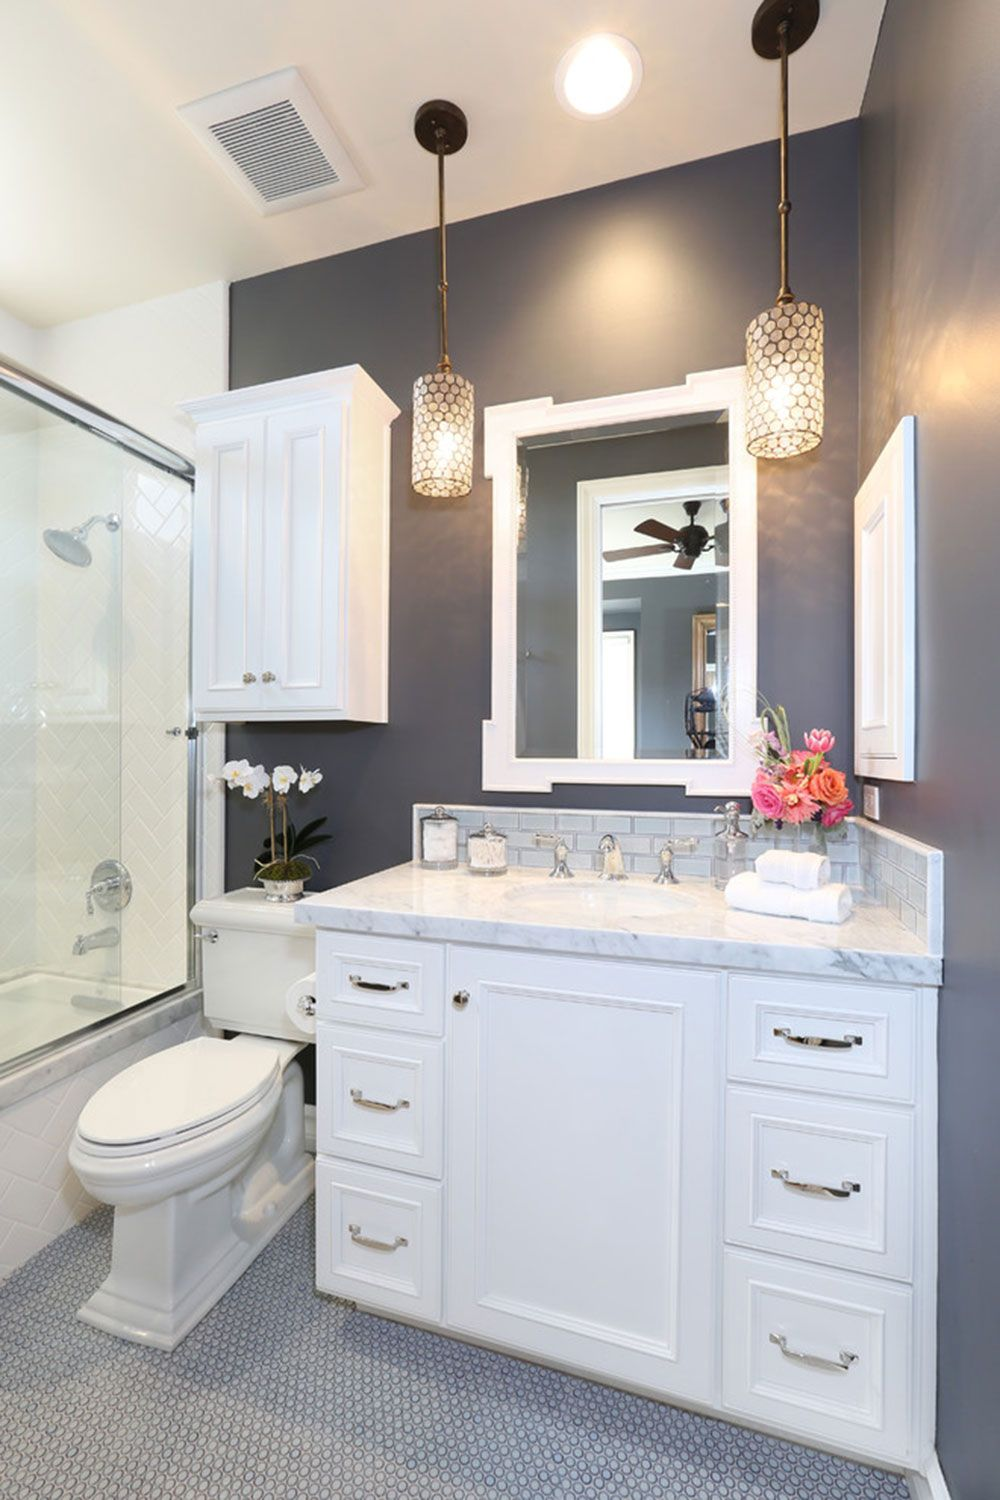 How To Make A Small Bathroom Look Bigger – Tips and Ideas ...